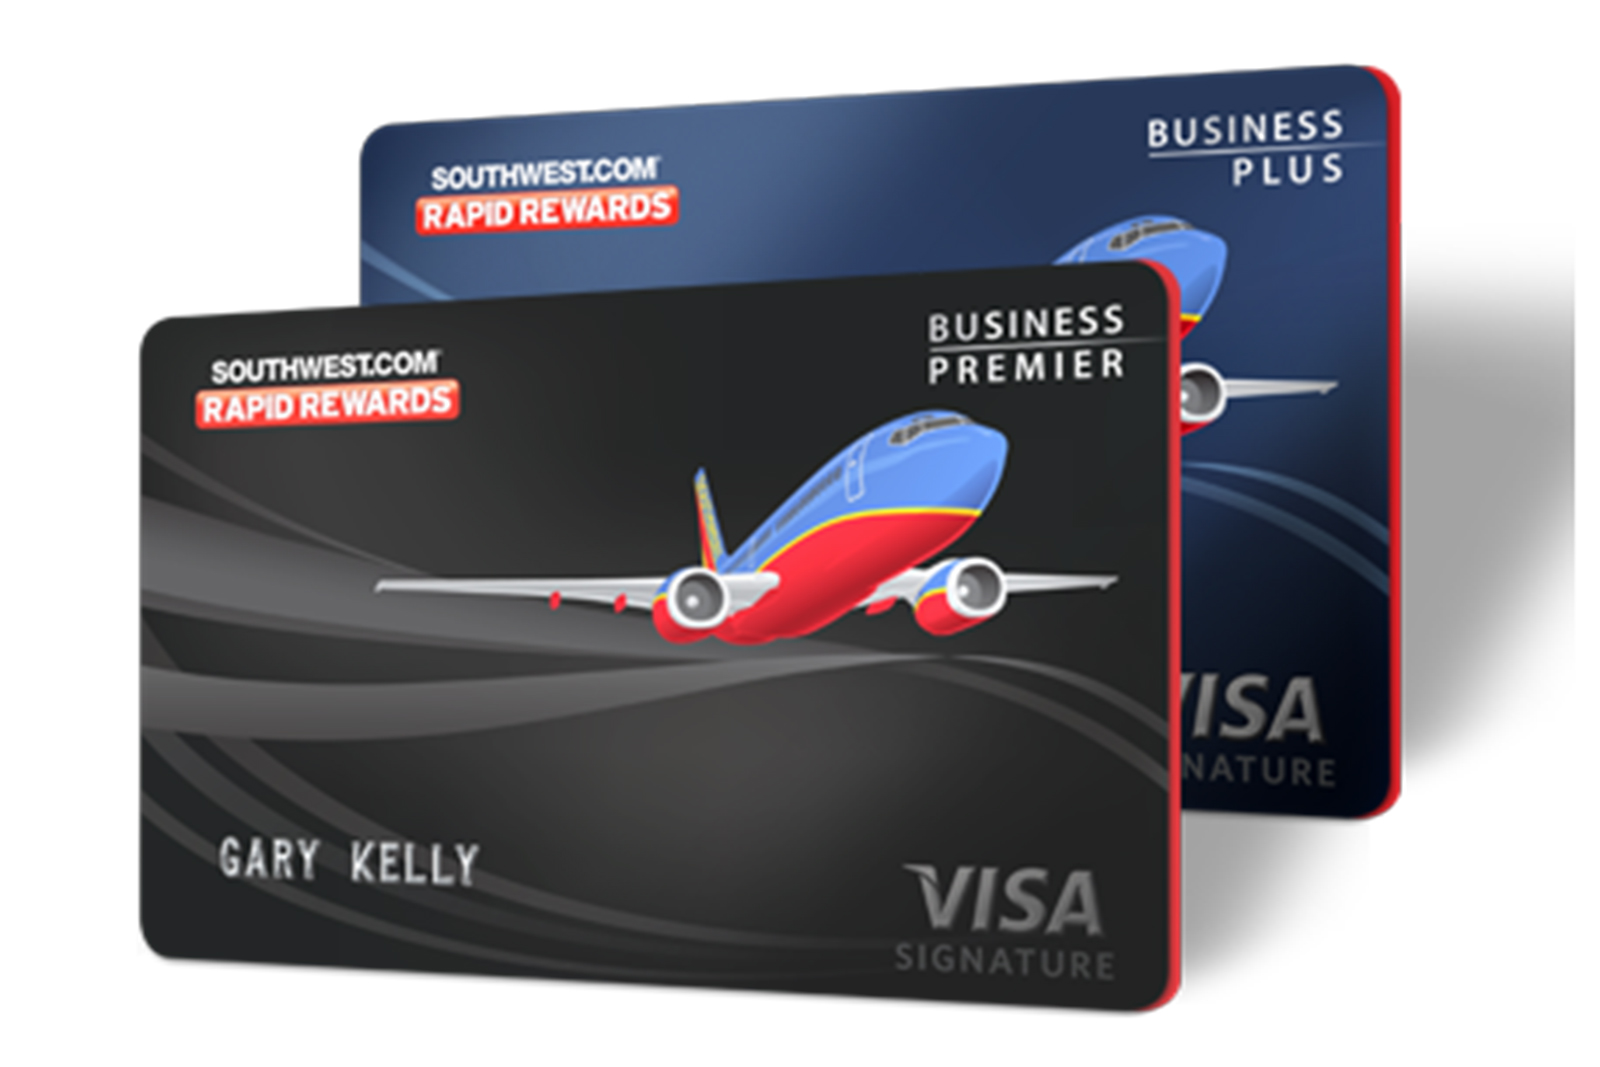 Southwest (LUV) Airlines May Replace Chase for Credit Cards ...